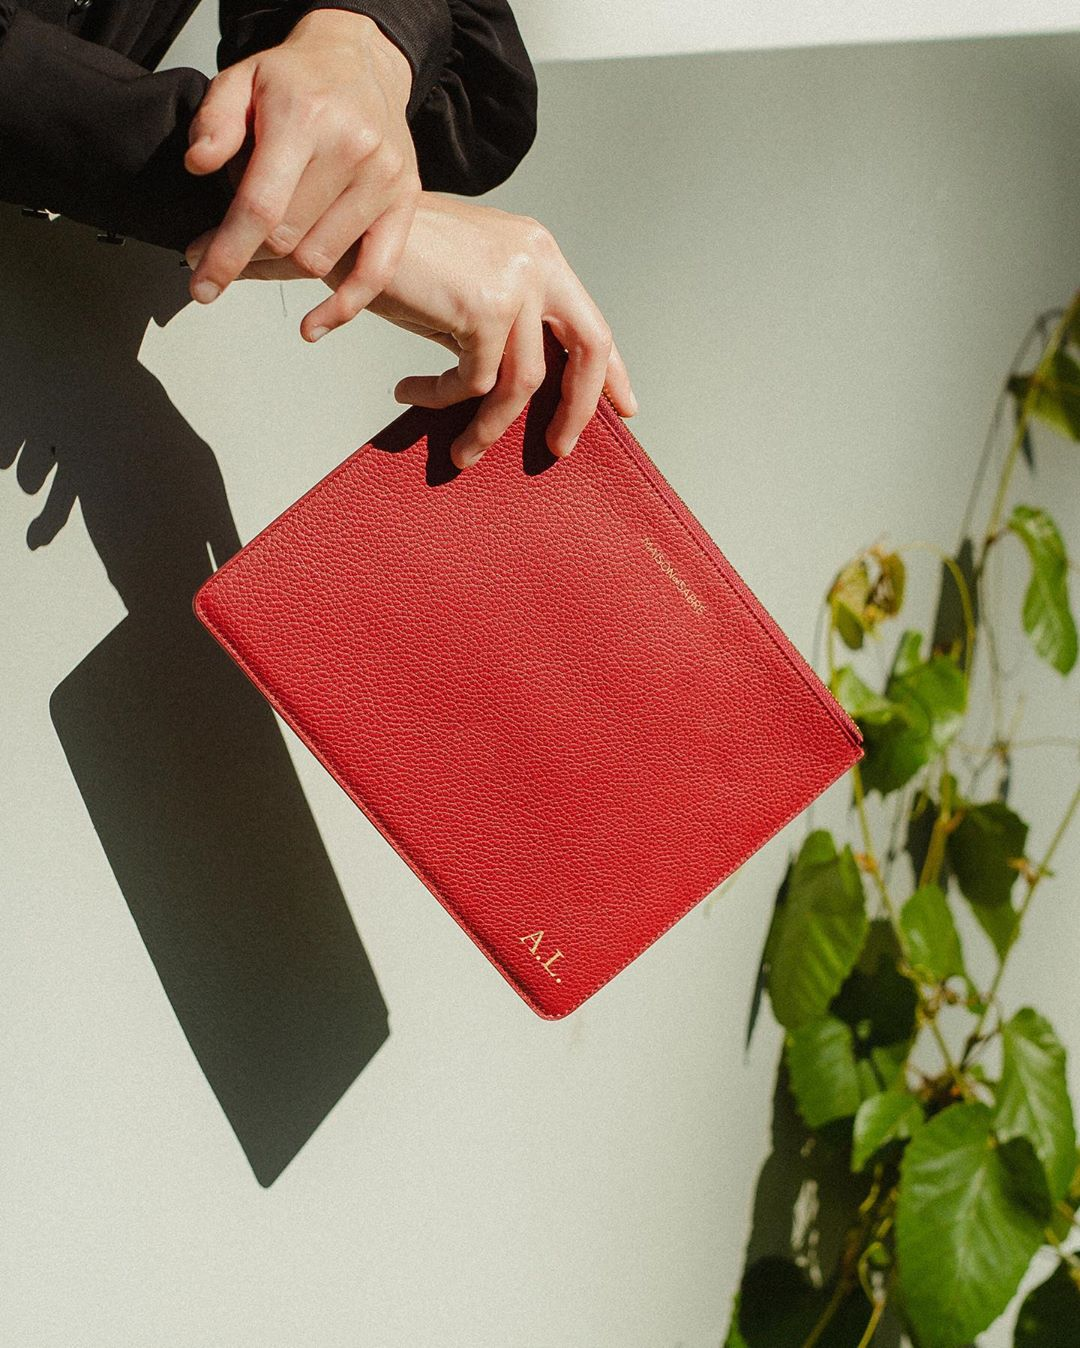 A woman holds are arms crossed with a red leather clutch.